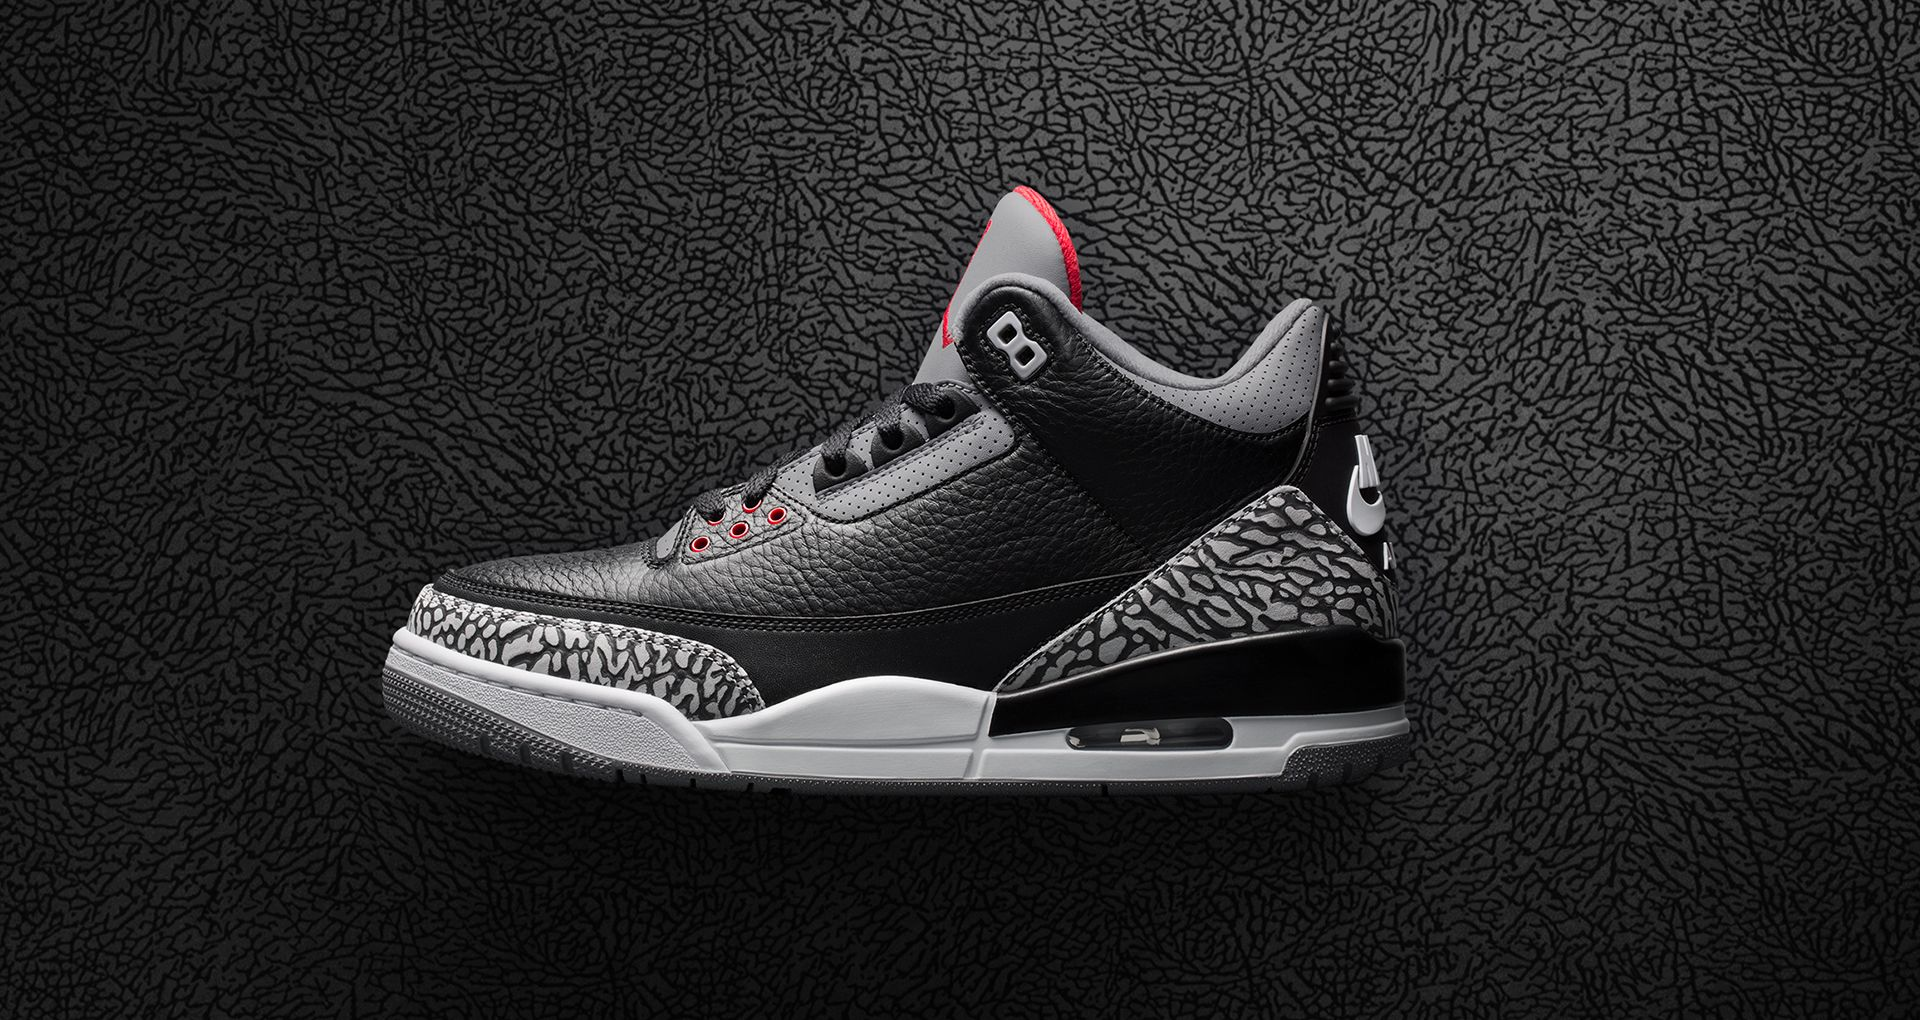 e05bd17aabf2 NIKE公式 エア ジョーダン 3 レトロ OG  Black Cement  2018 (854262 ...